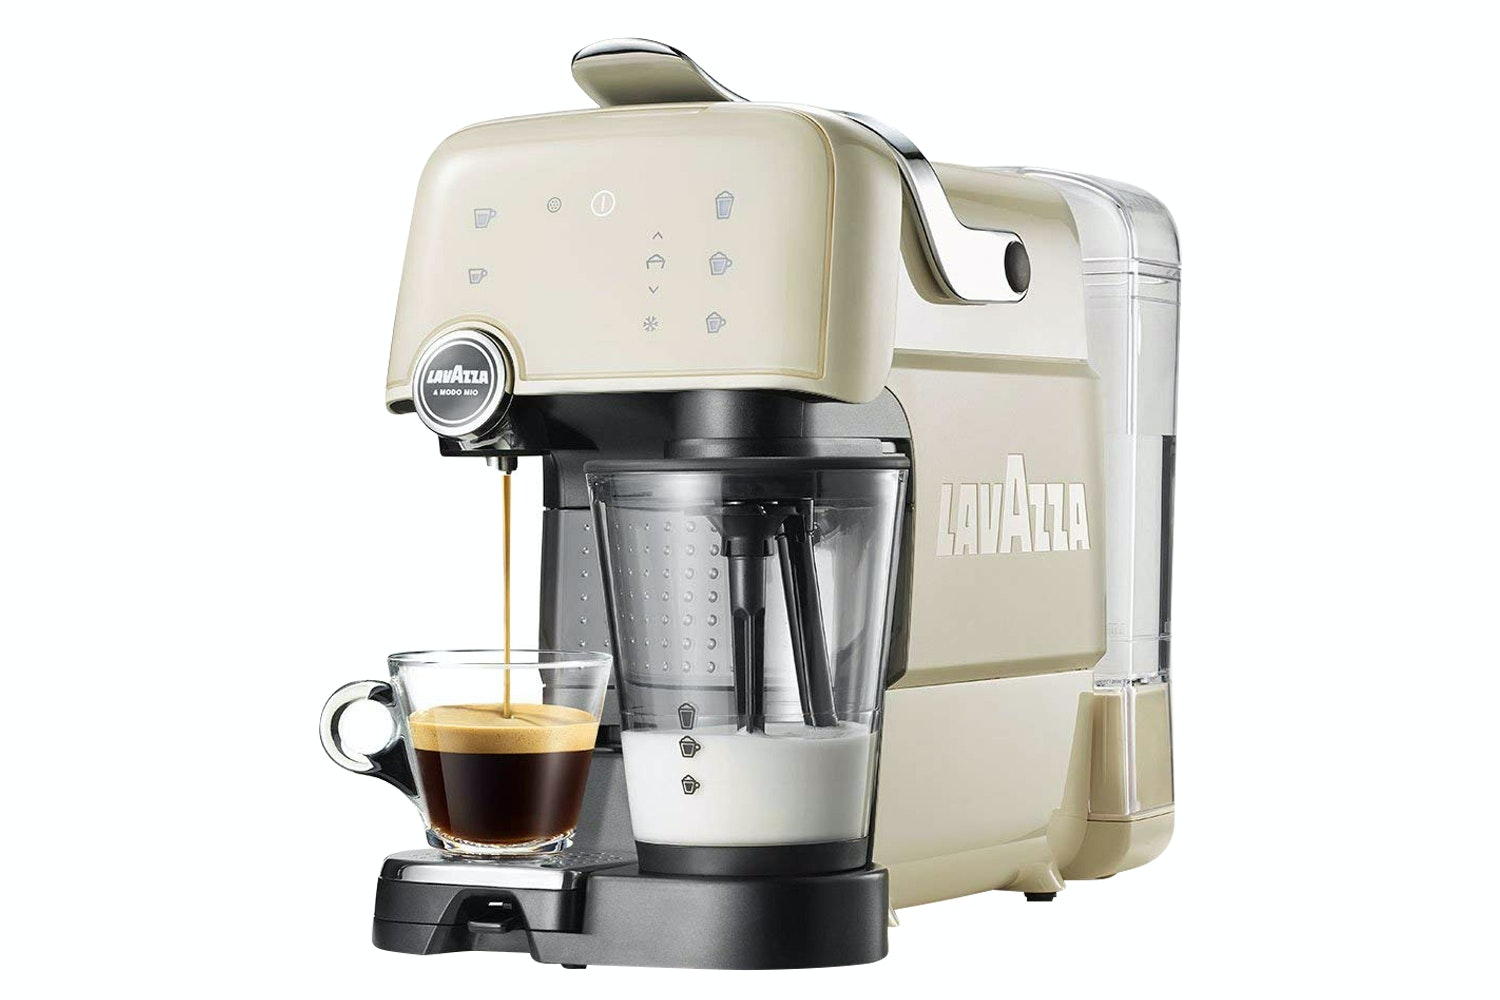 Lavazza Fantasia Coffee Machine | Creamy White